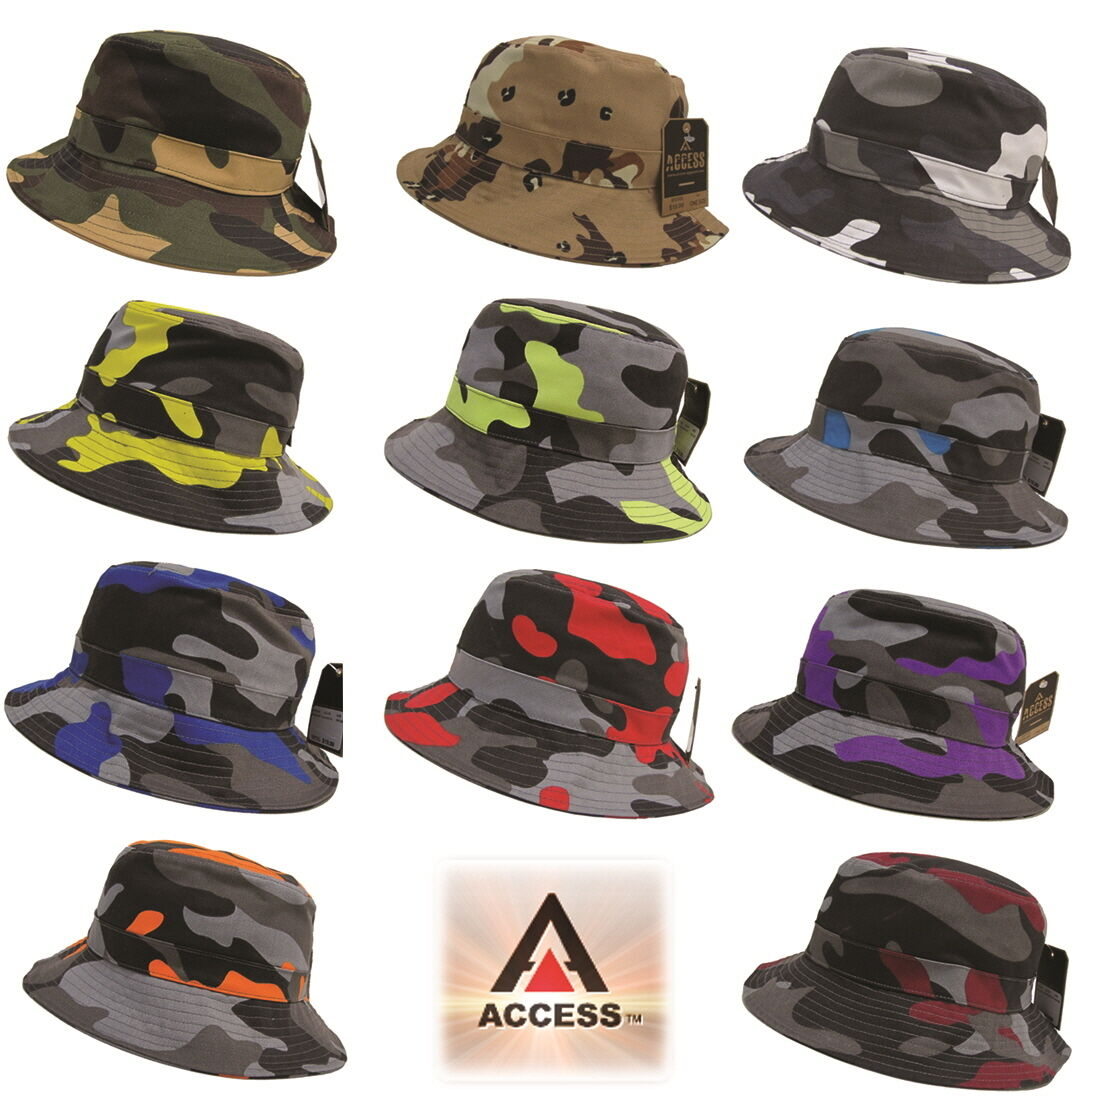 NEW AUTHENTIC ACCESS UNISEX HUNTING CAMO BUCKET HAT BASIC HUNTING UNISEX FISHING OUTDOOR CAP 02545d